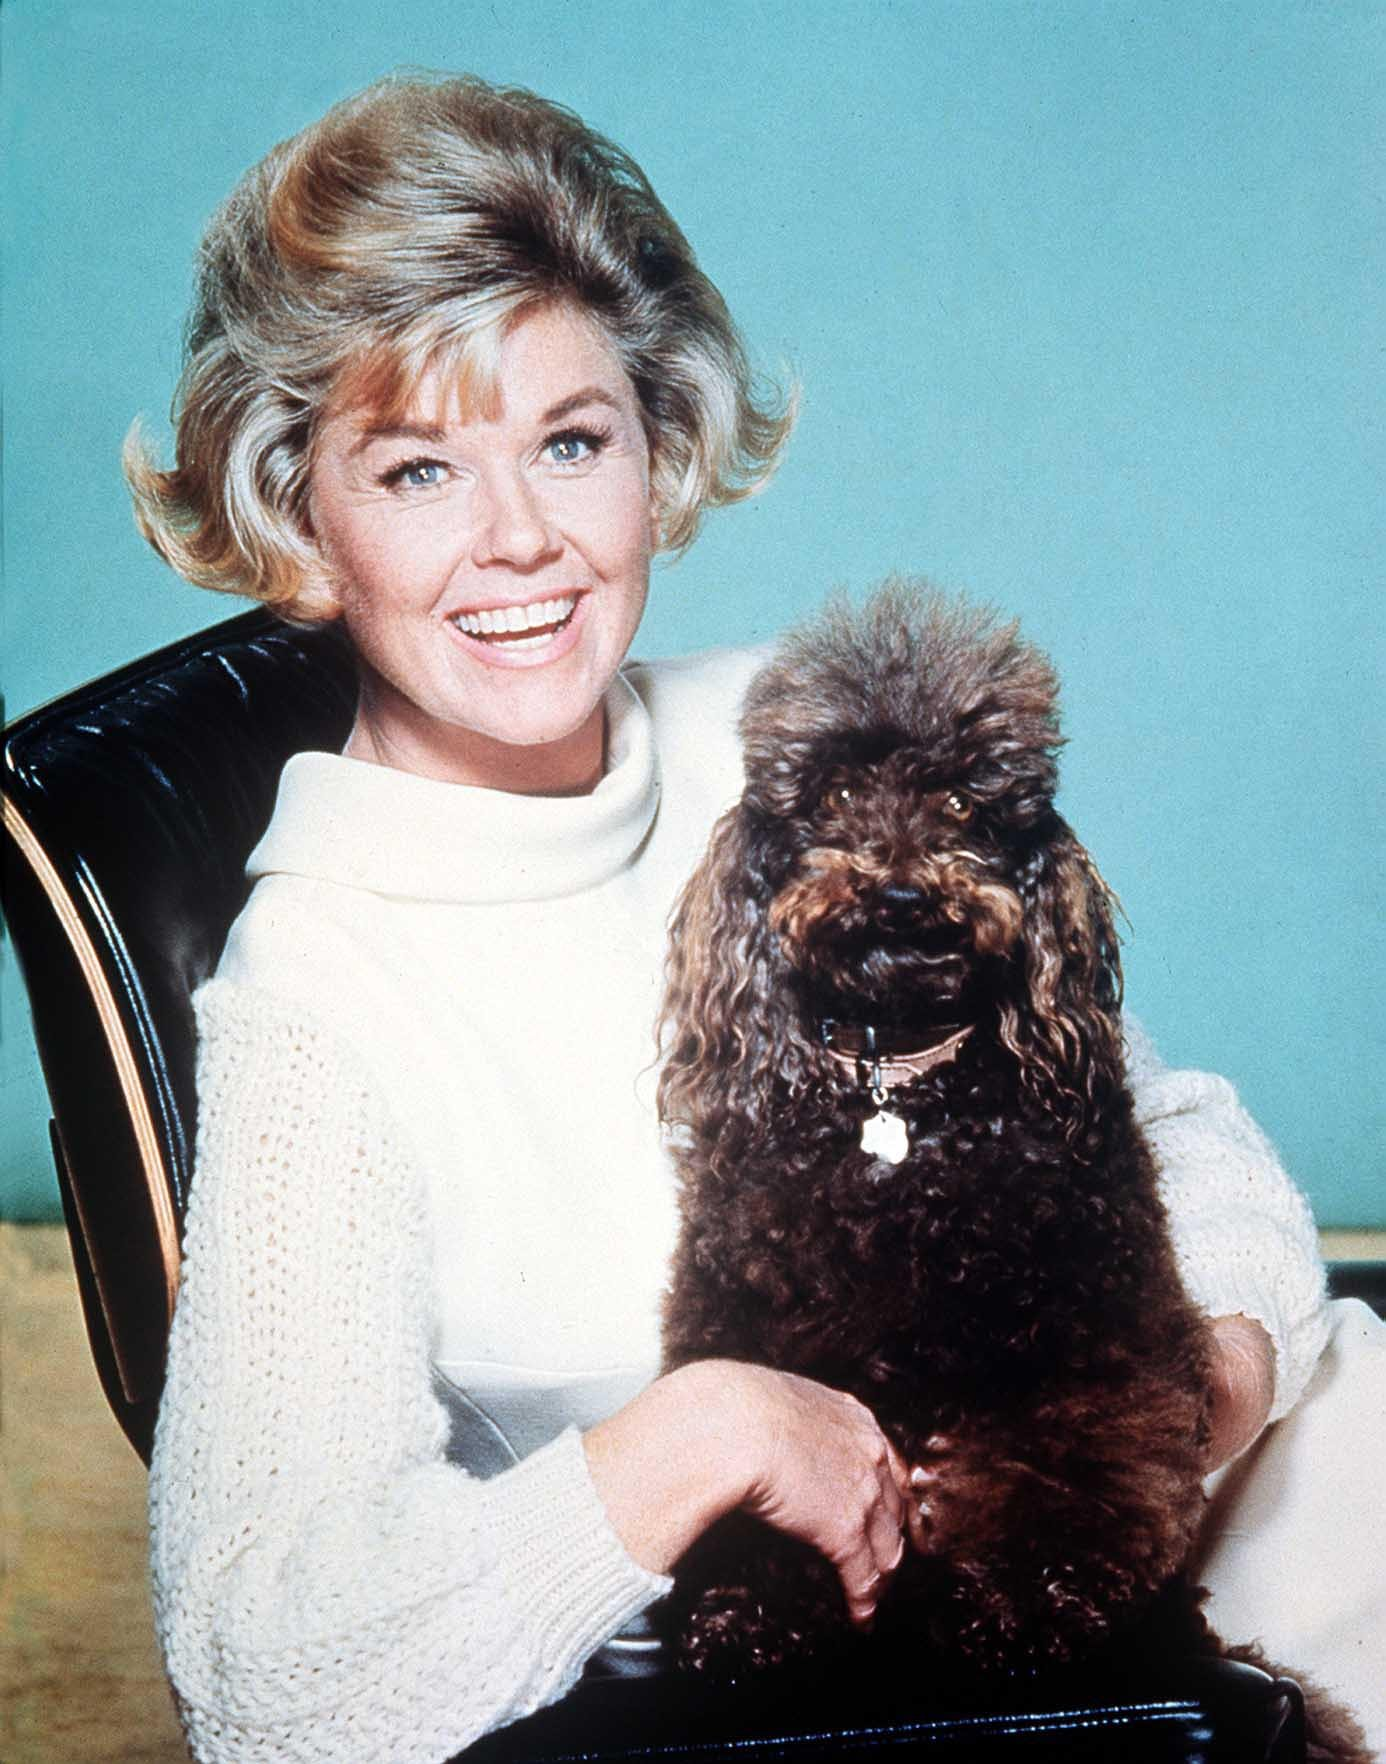 Image Credits: Getty Images / Hulton Archive | American Singer and Actress Doris Day, 01.05.1968.